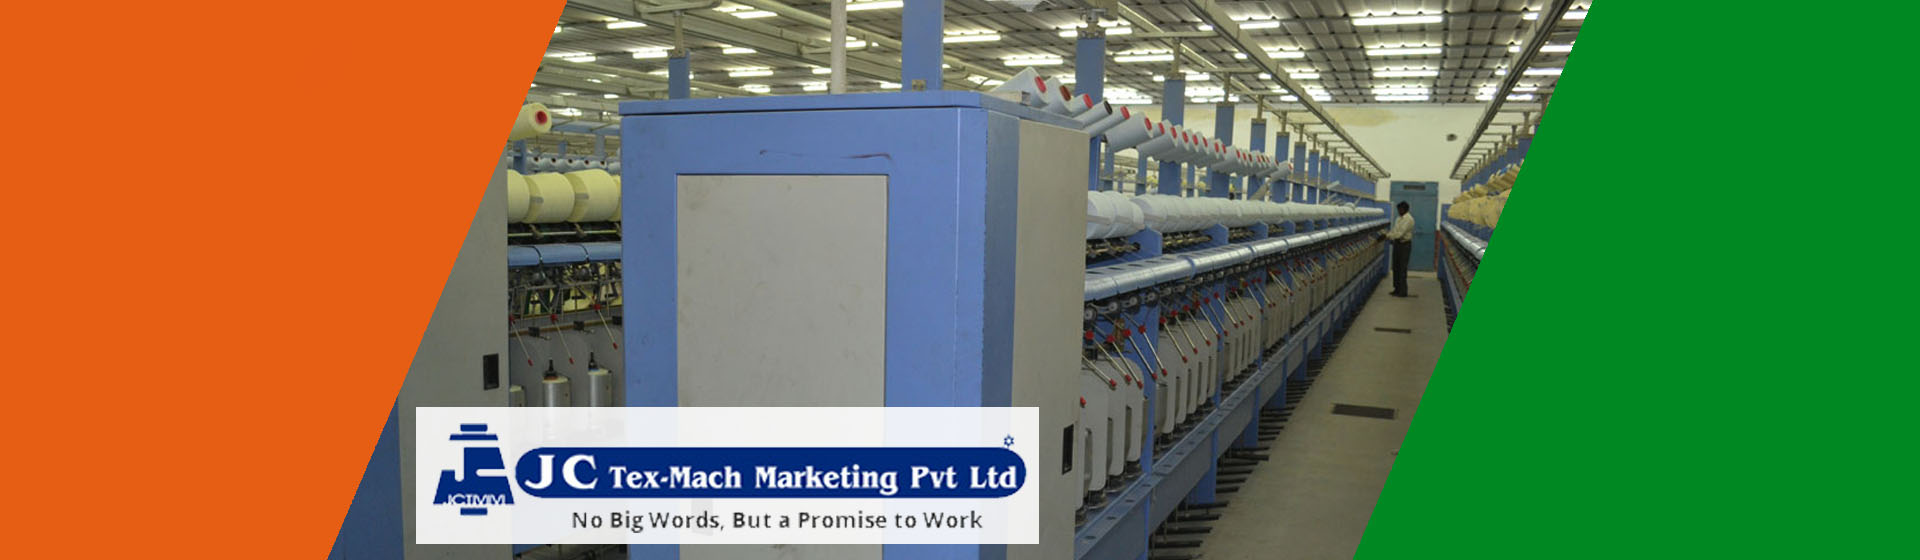 jc-tech-mach-marketing